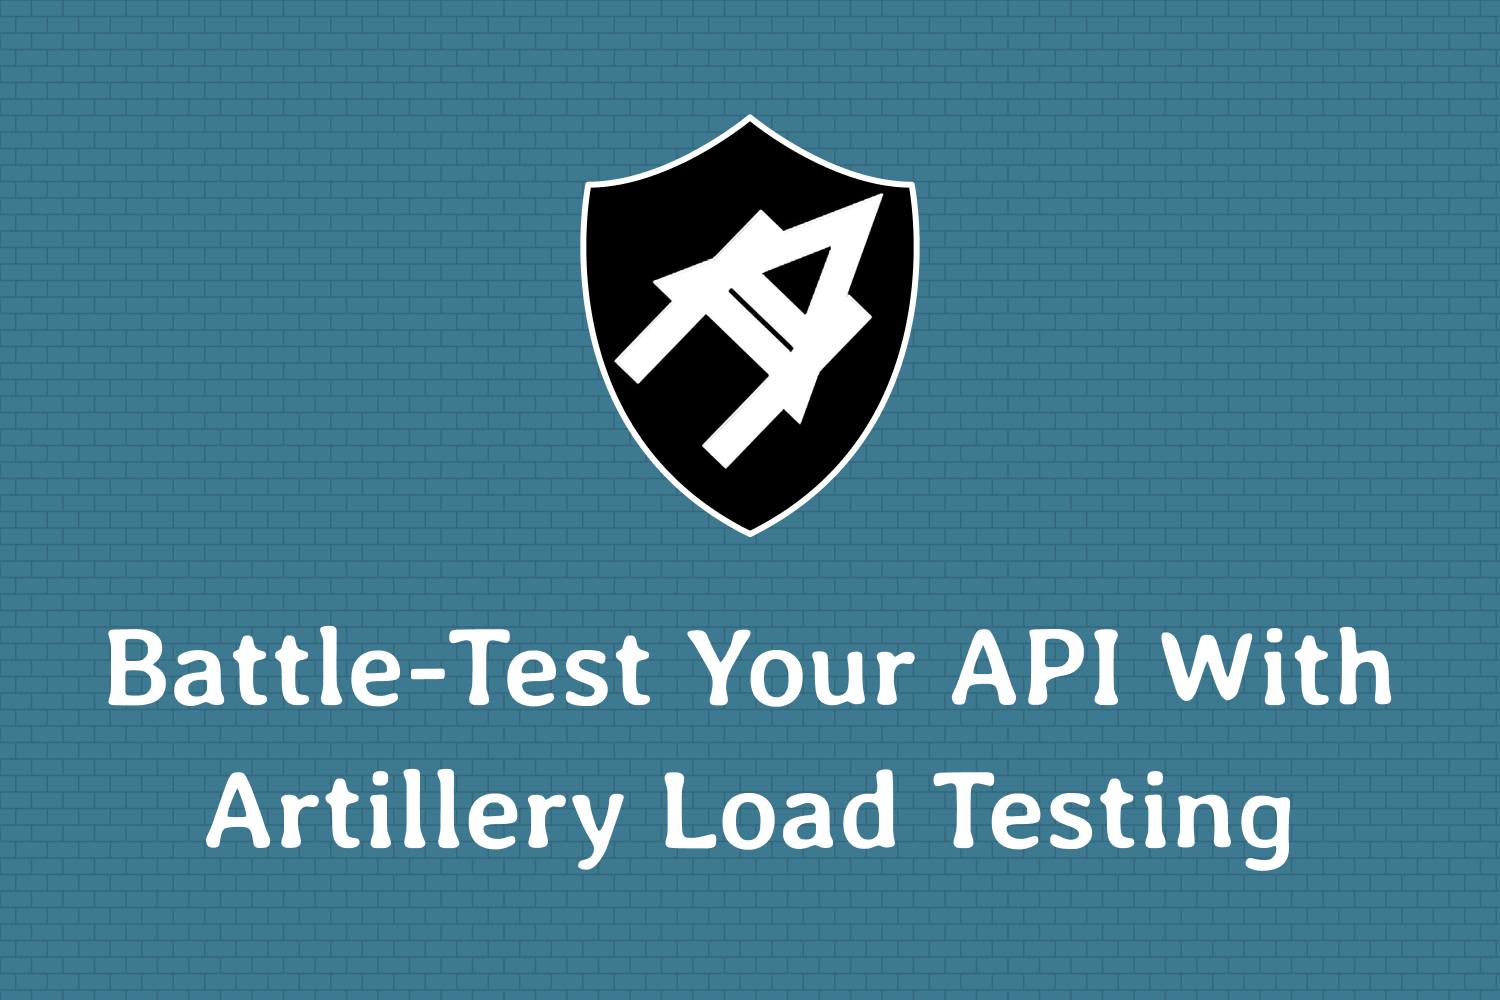 Battle-Test Your API With Artillery Load Testing